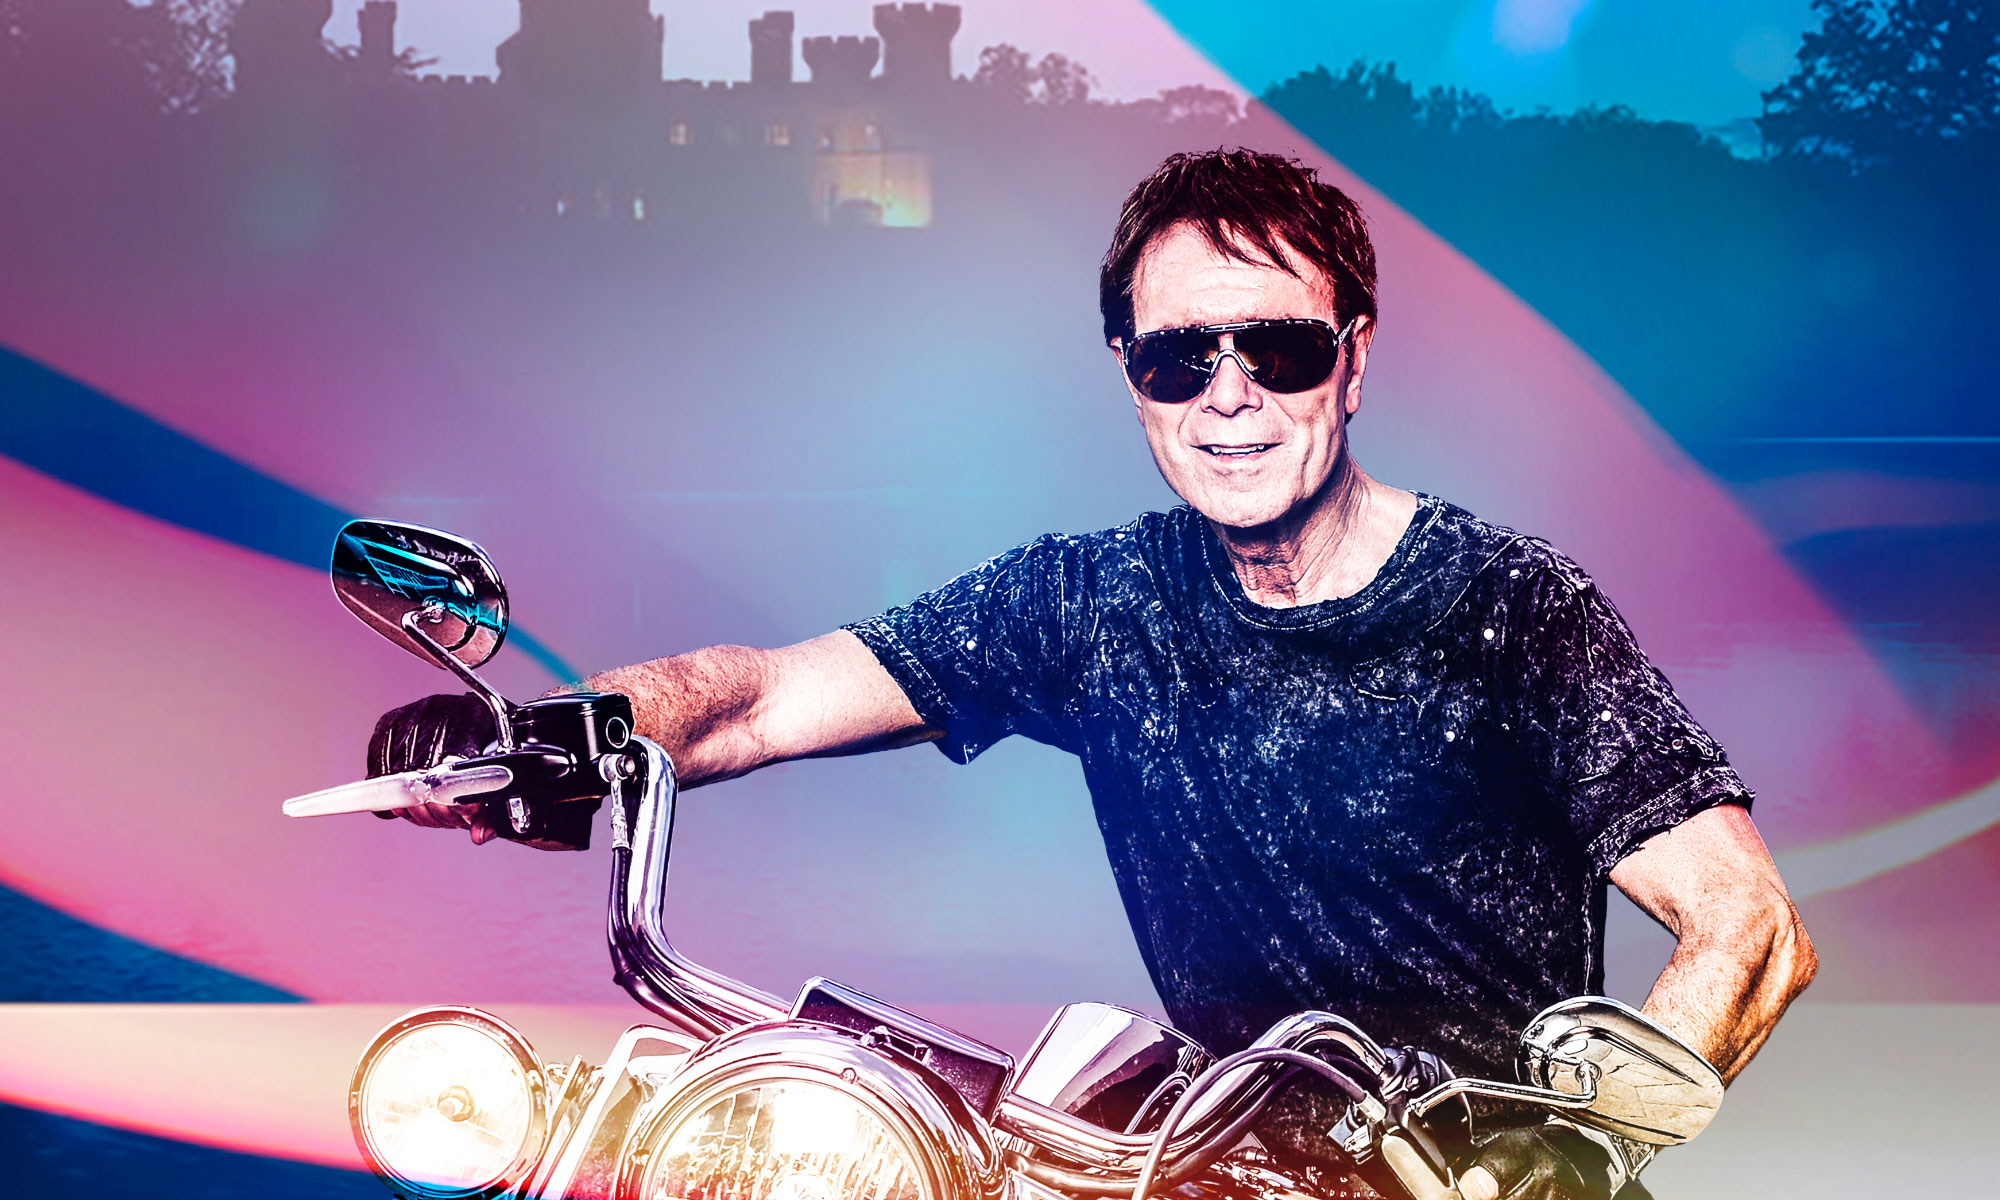 Cliff richard tour dates pic 171